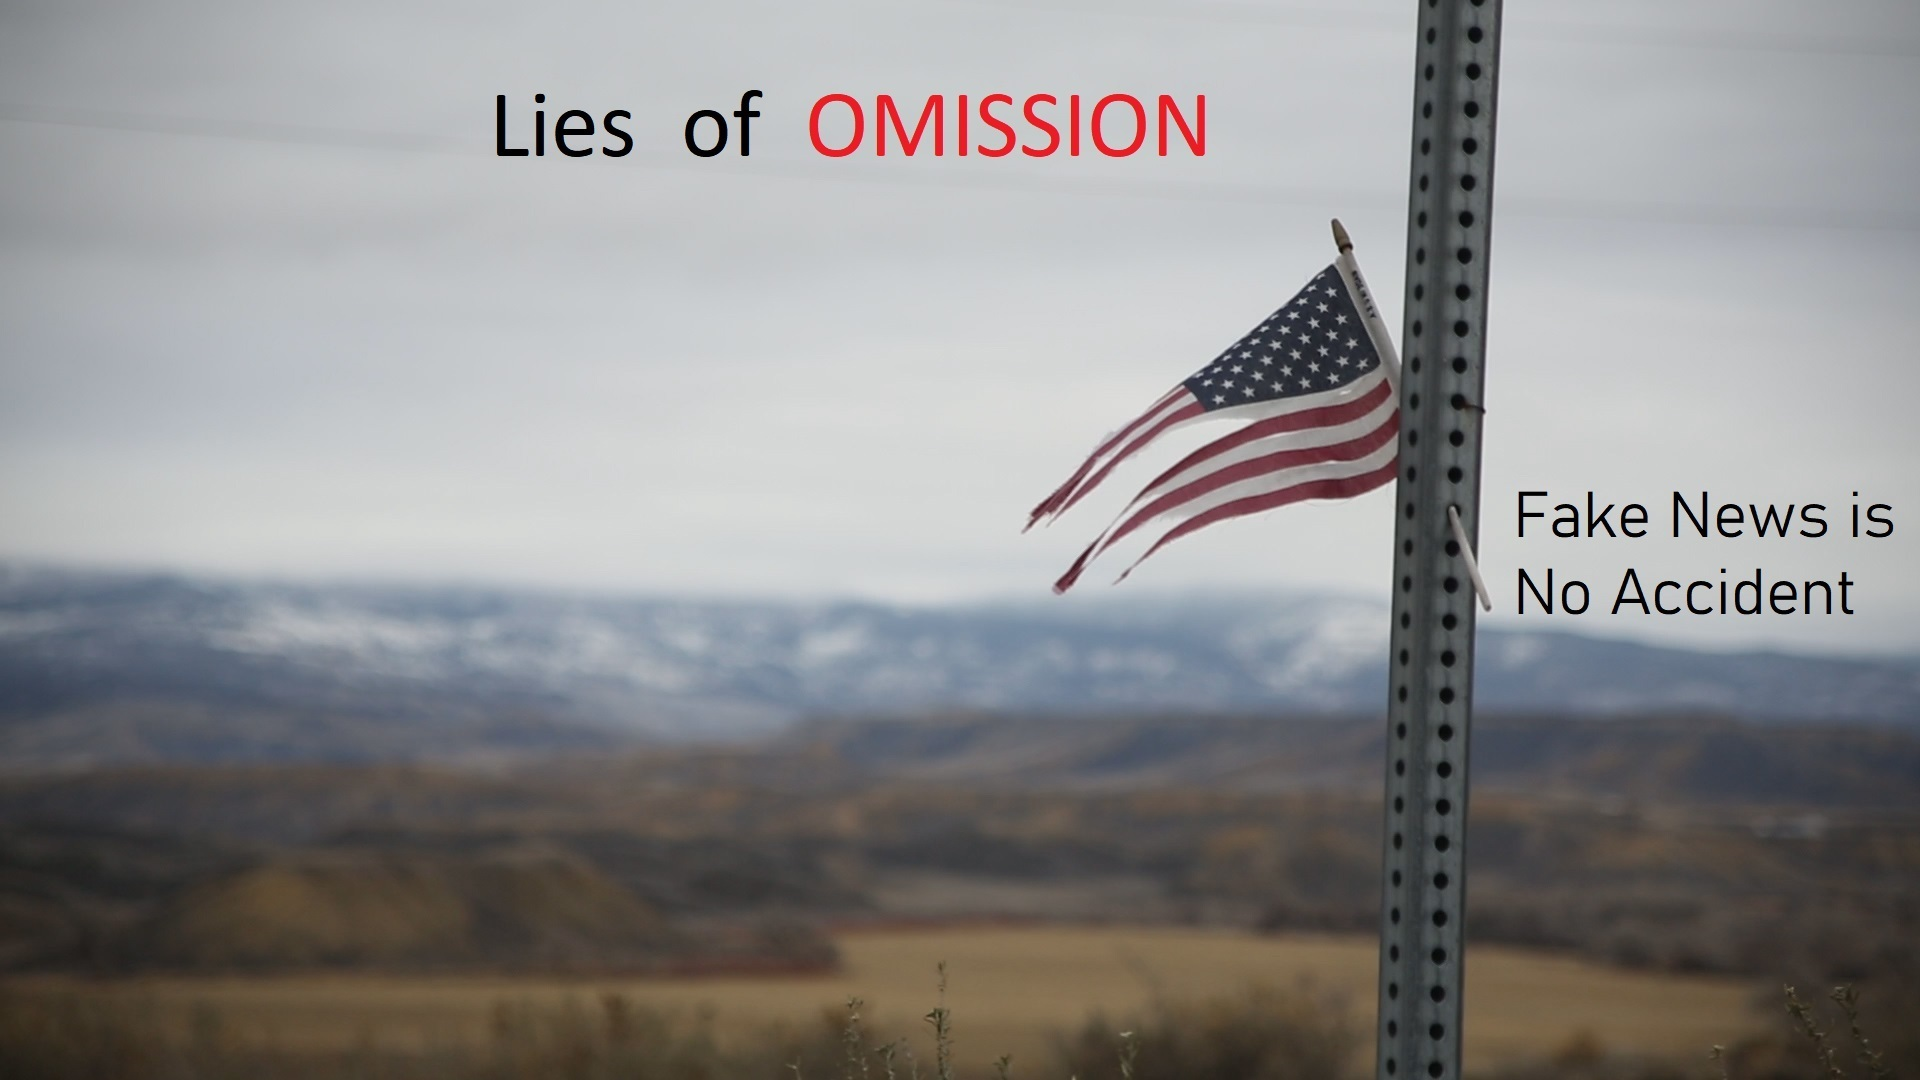 Lies of Omission